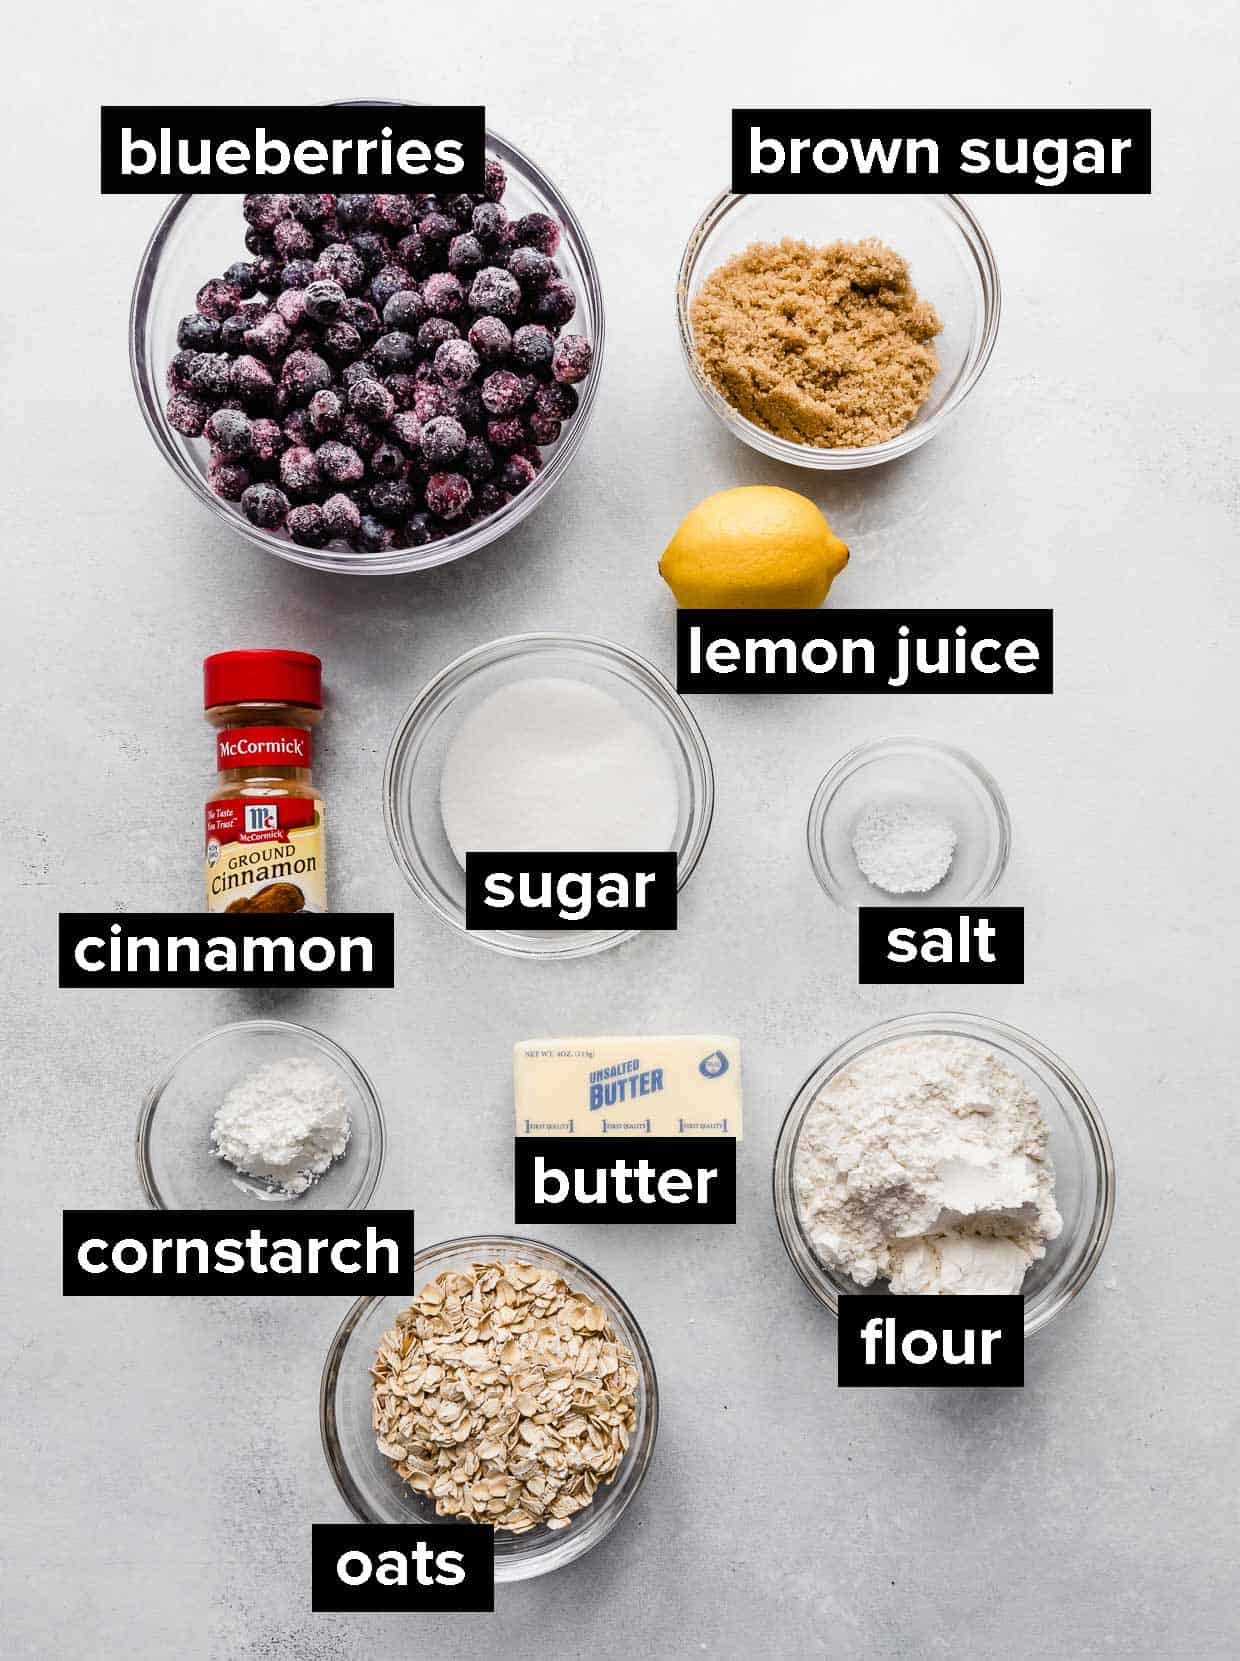 Blueberry crisp ingredients on a light colored background.